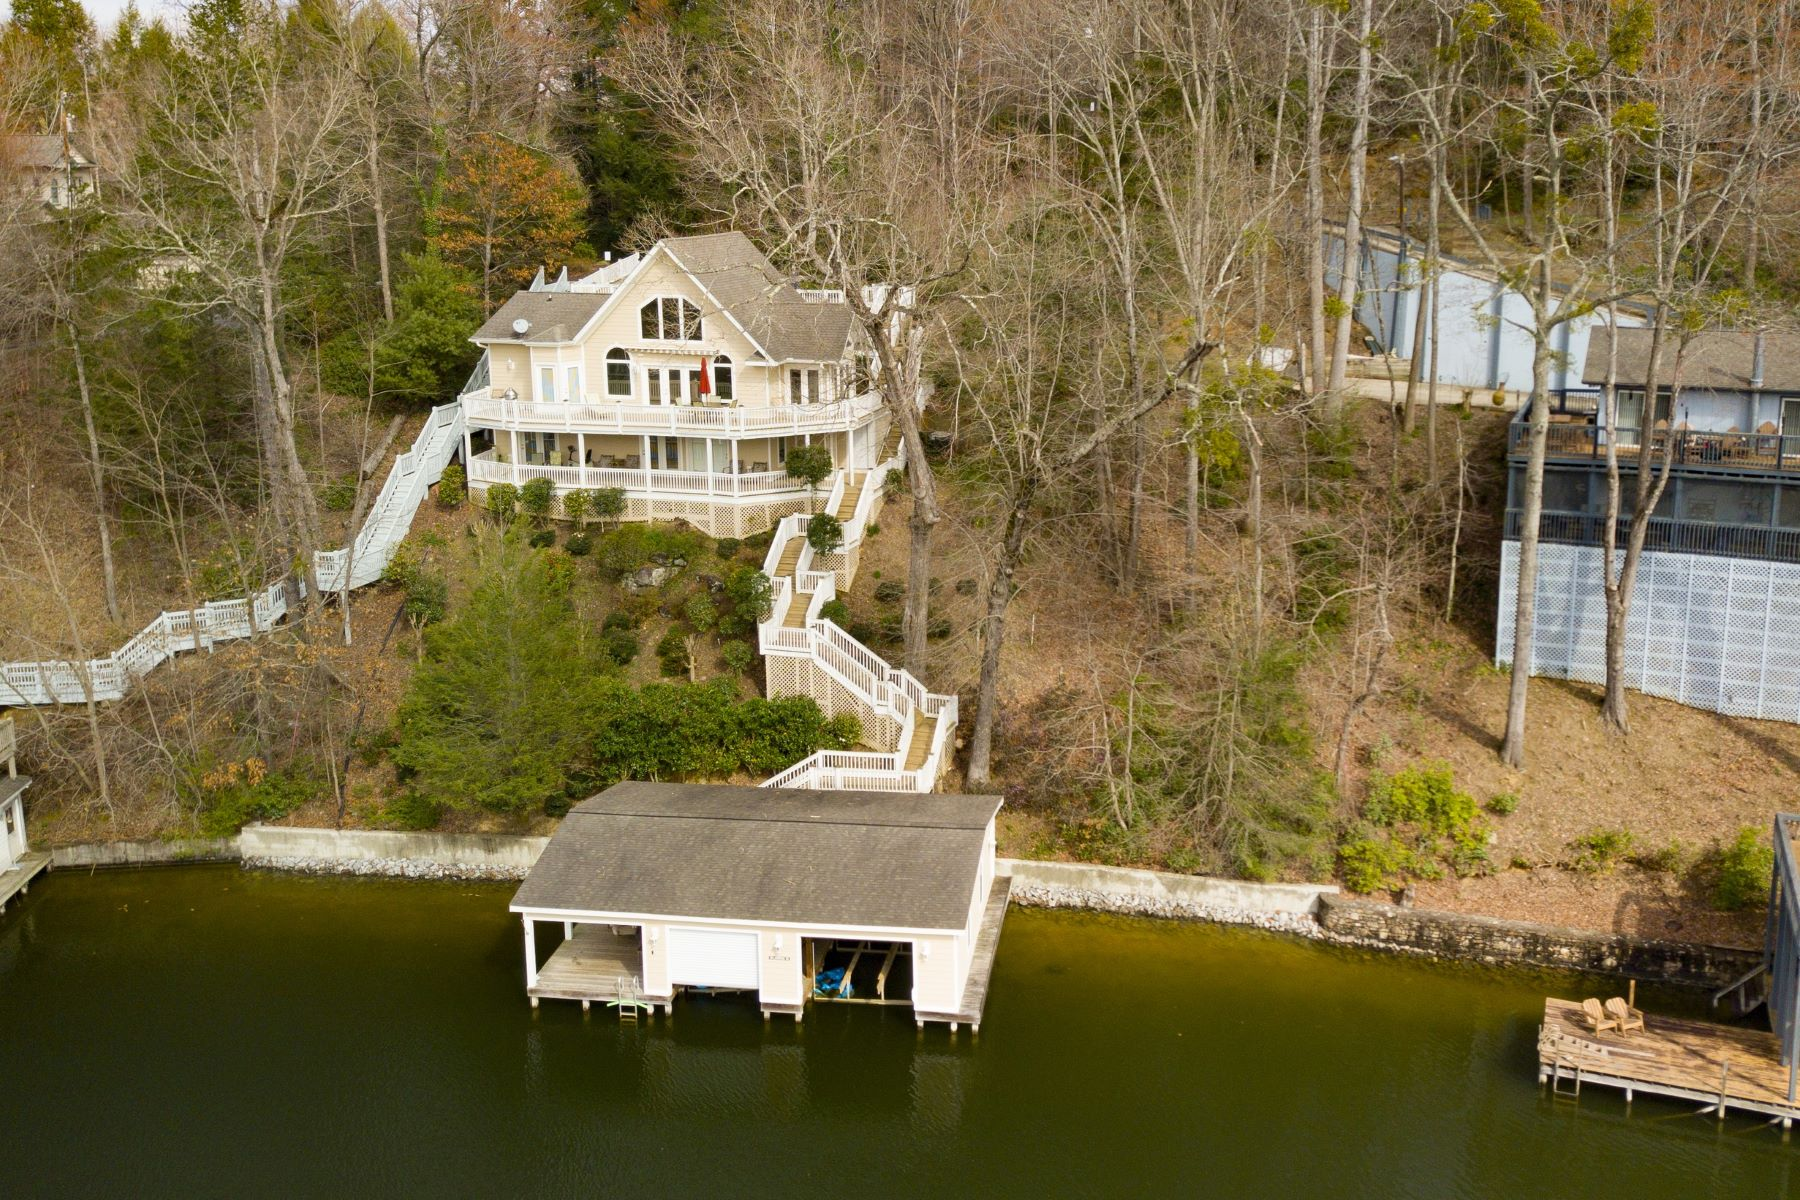 Single Family Homes for Sale at 140 Lakeridge Road, Lake Lure, NC 140 Lakeridge Road Lake Lure, North Carolina 28746 United States